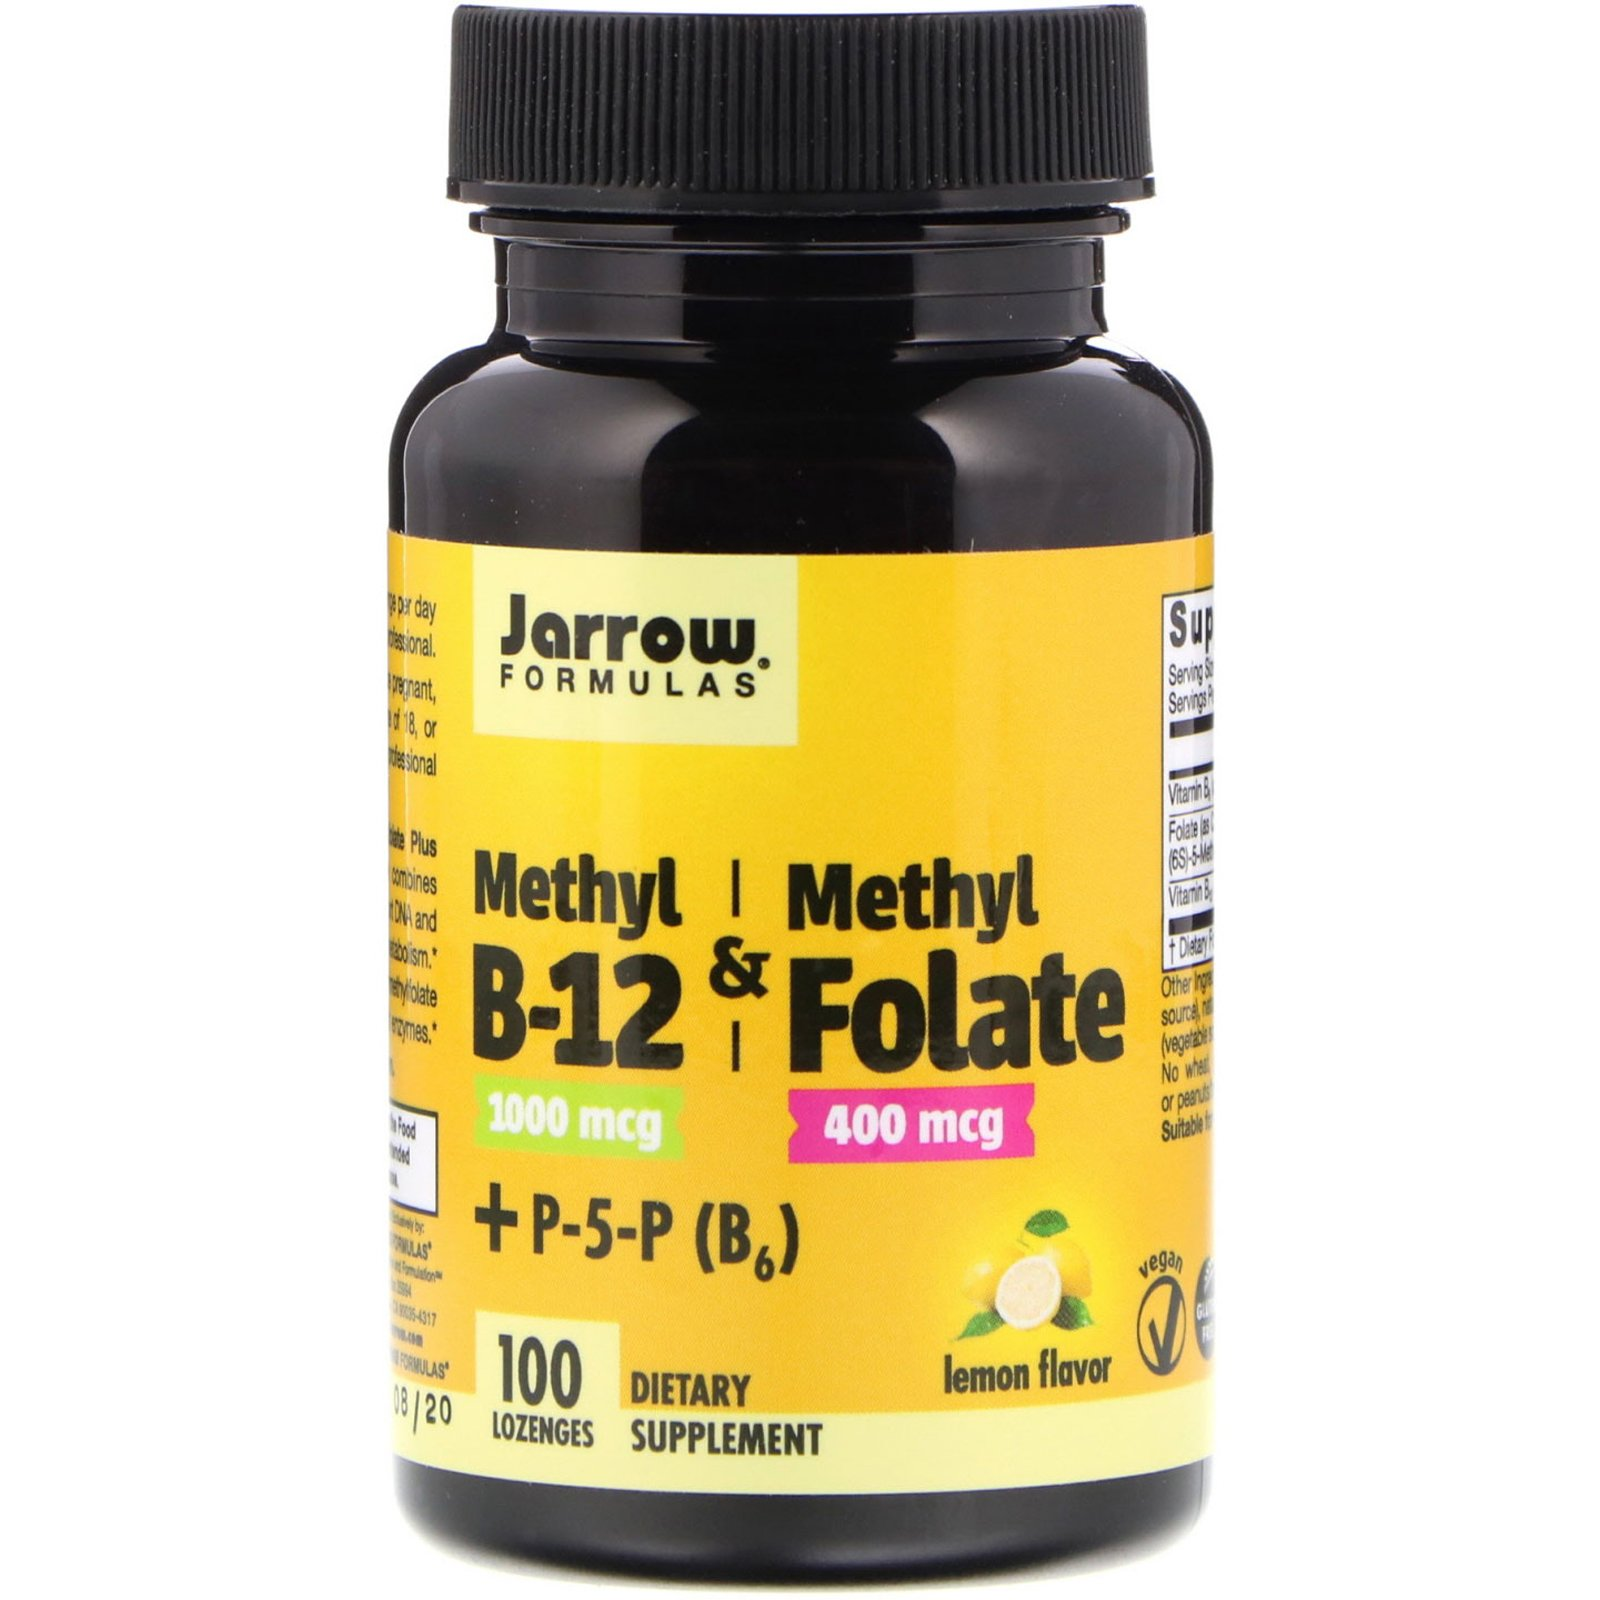 Метілфолат і метил B-12, Methyl B-12 & Methyl Folate, Jarrow Formulas 1000 мкг / 400 мкг, 100 Леду